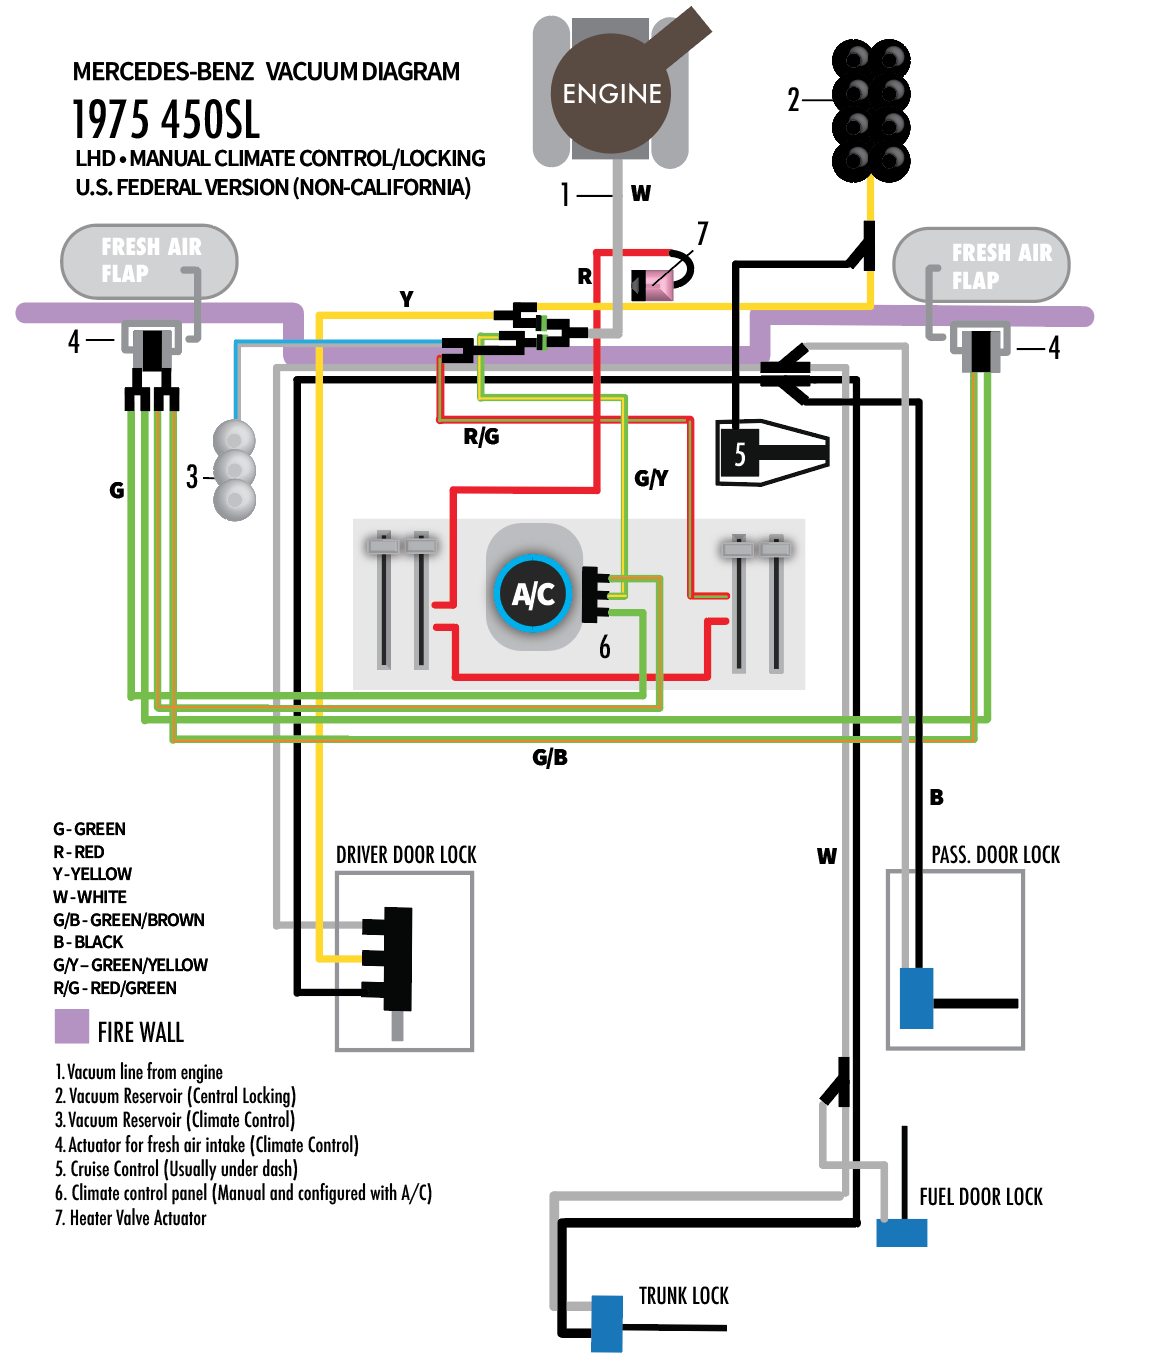 2 Way Radio Wiring Diagram Real 1 Lighting Circuit Mercedes Benz W123 And R107 Diy Vacuum Light Switch Coast 3